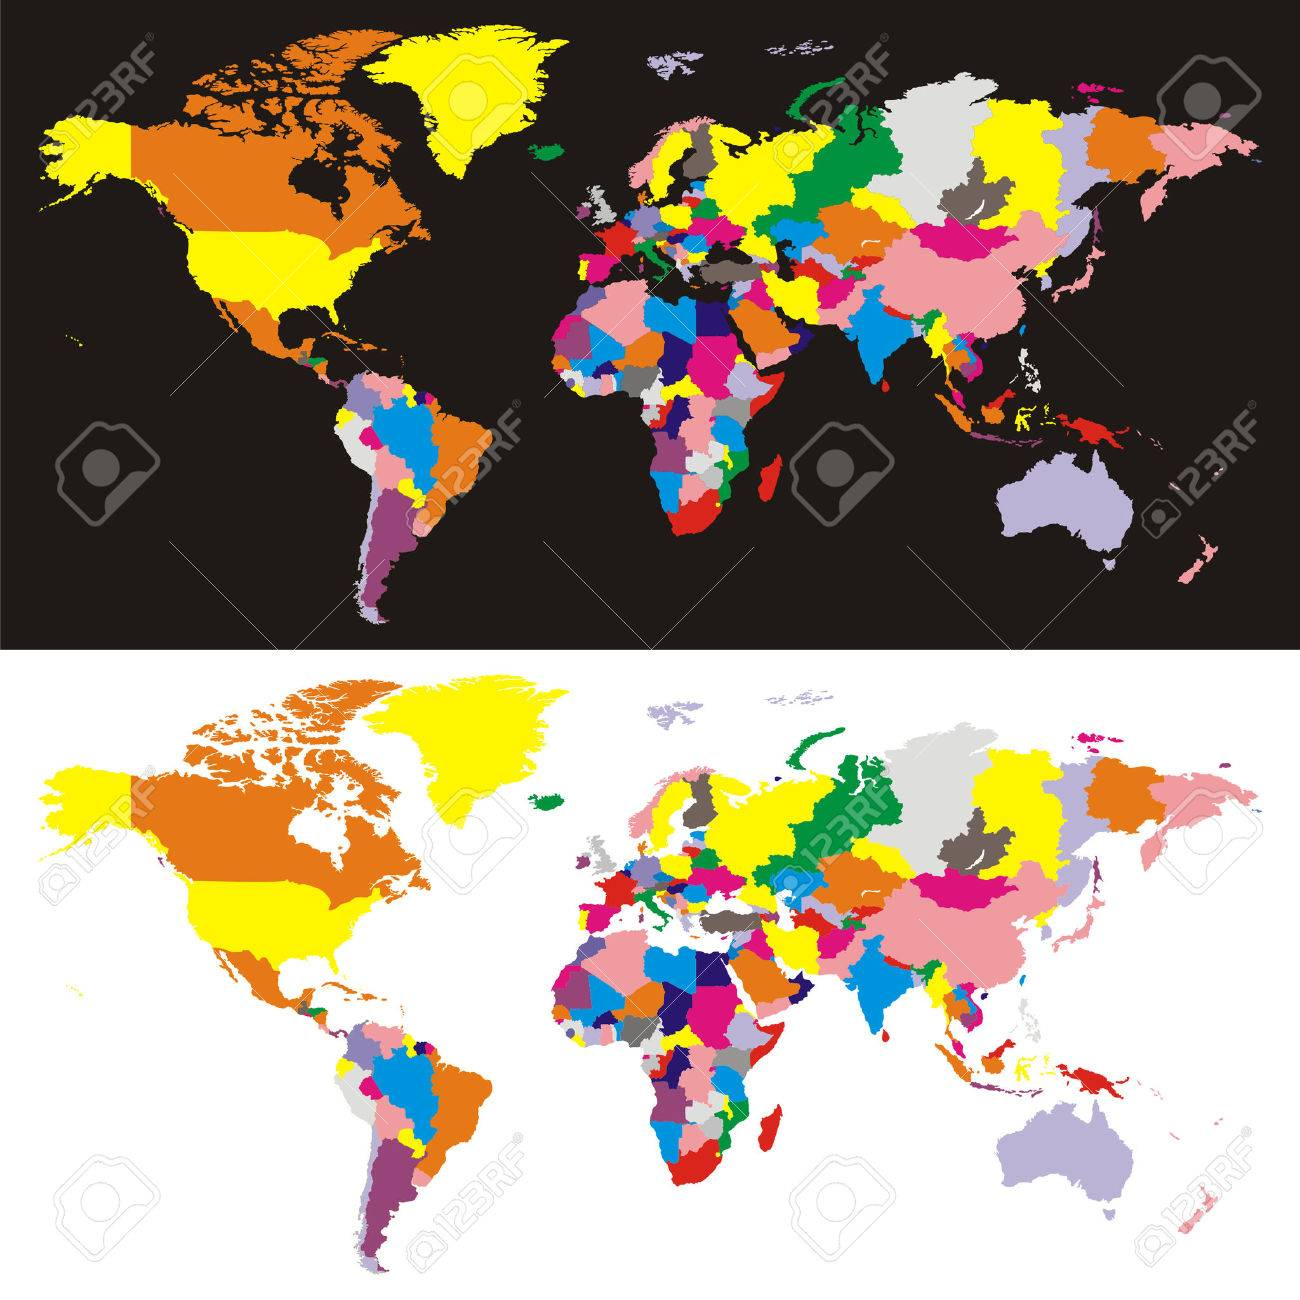 Fully editable vector world map with all countries in different fully editable vector world map with all countries in different colors stock vector 5605828 gumiabroncs Gallery